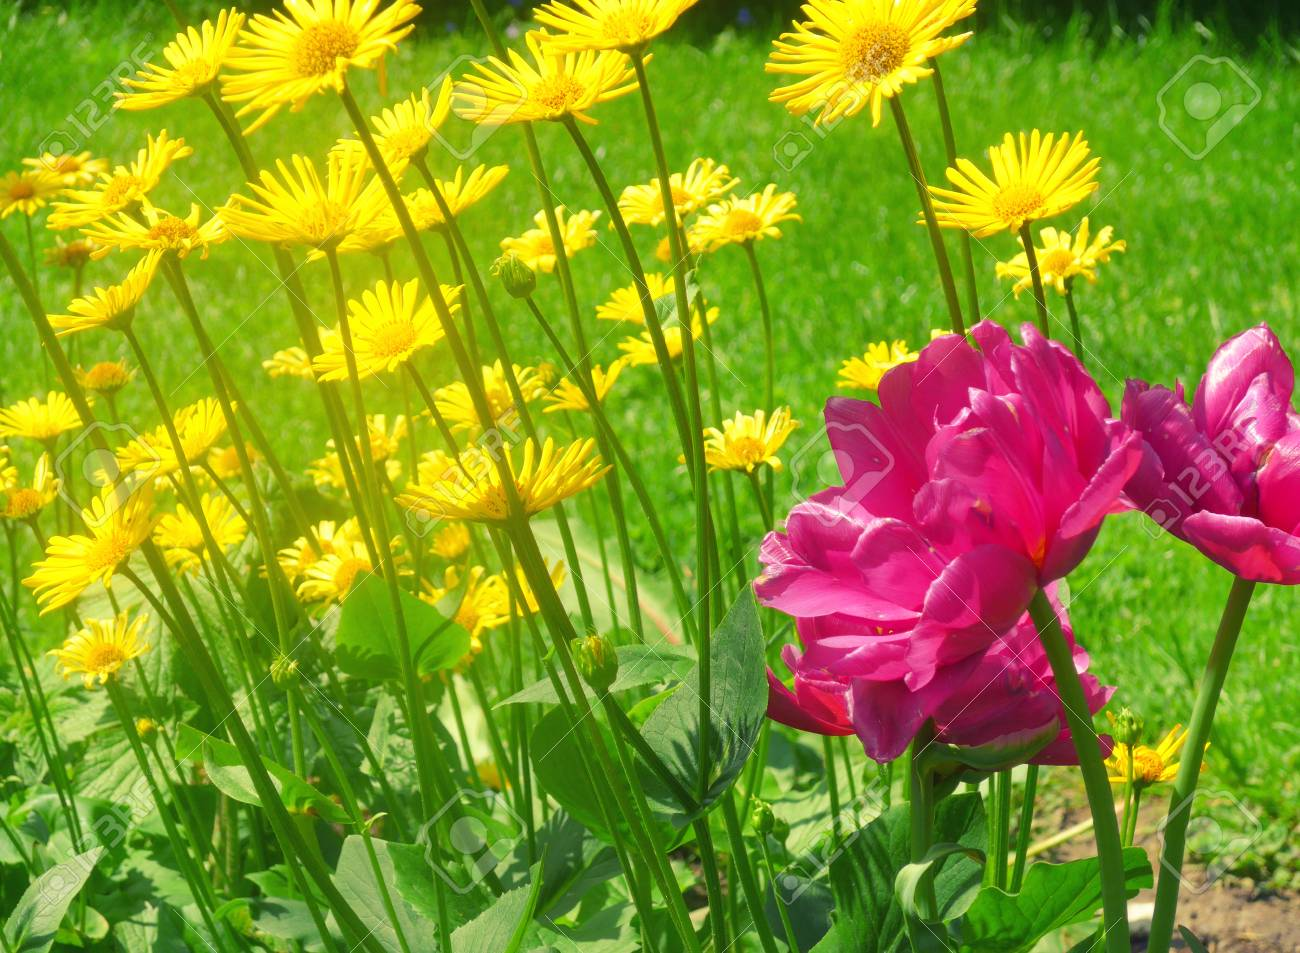 Bright pink flowers against the background of bright yellow flowers bright pink flowers against the background of bright yellow flowers blowing in the wind as mightylinksfo